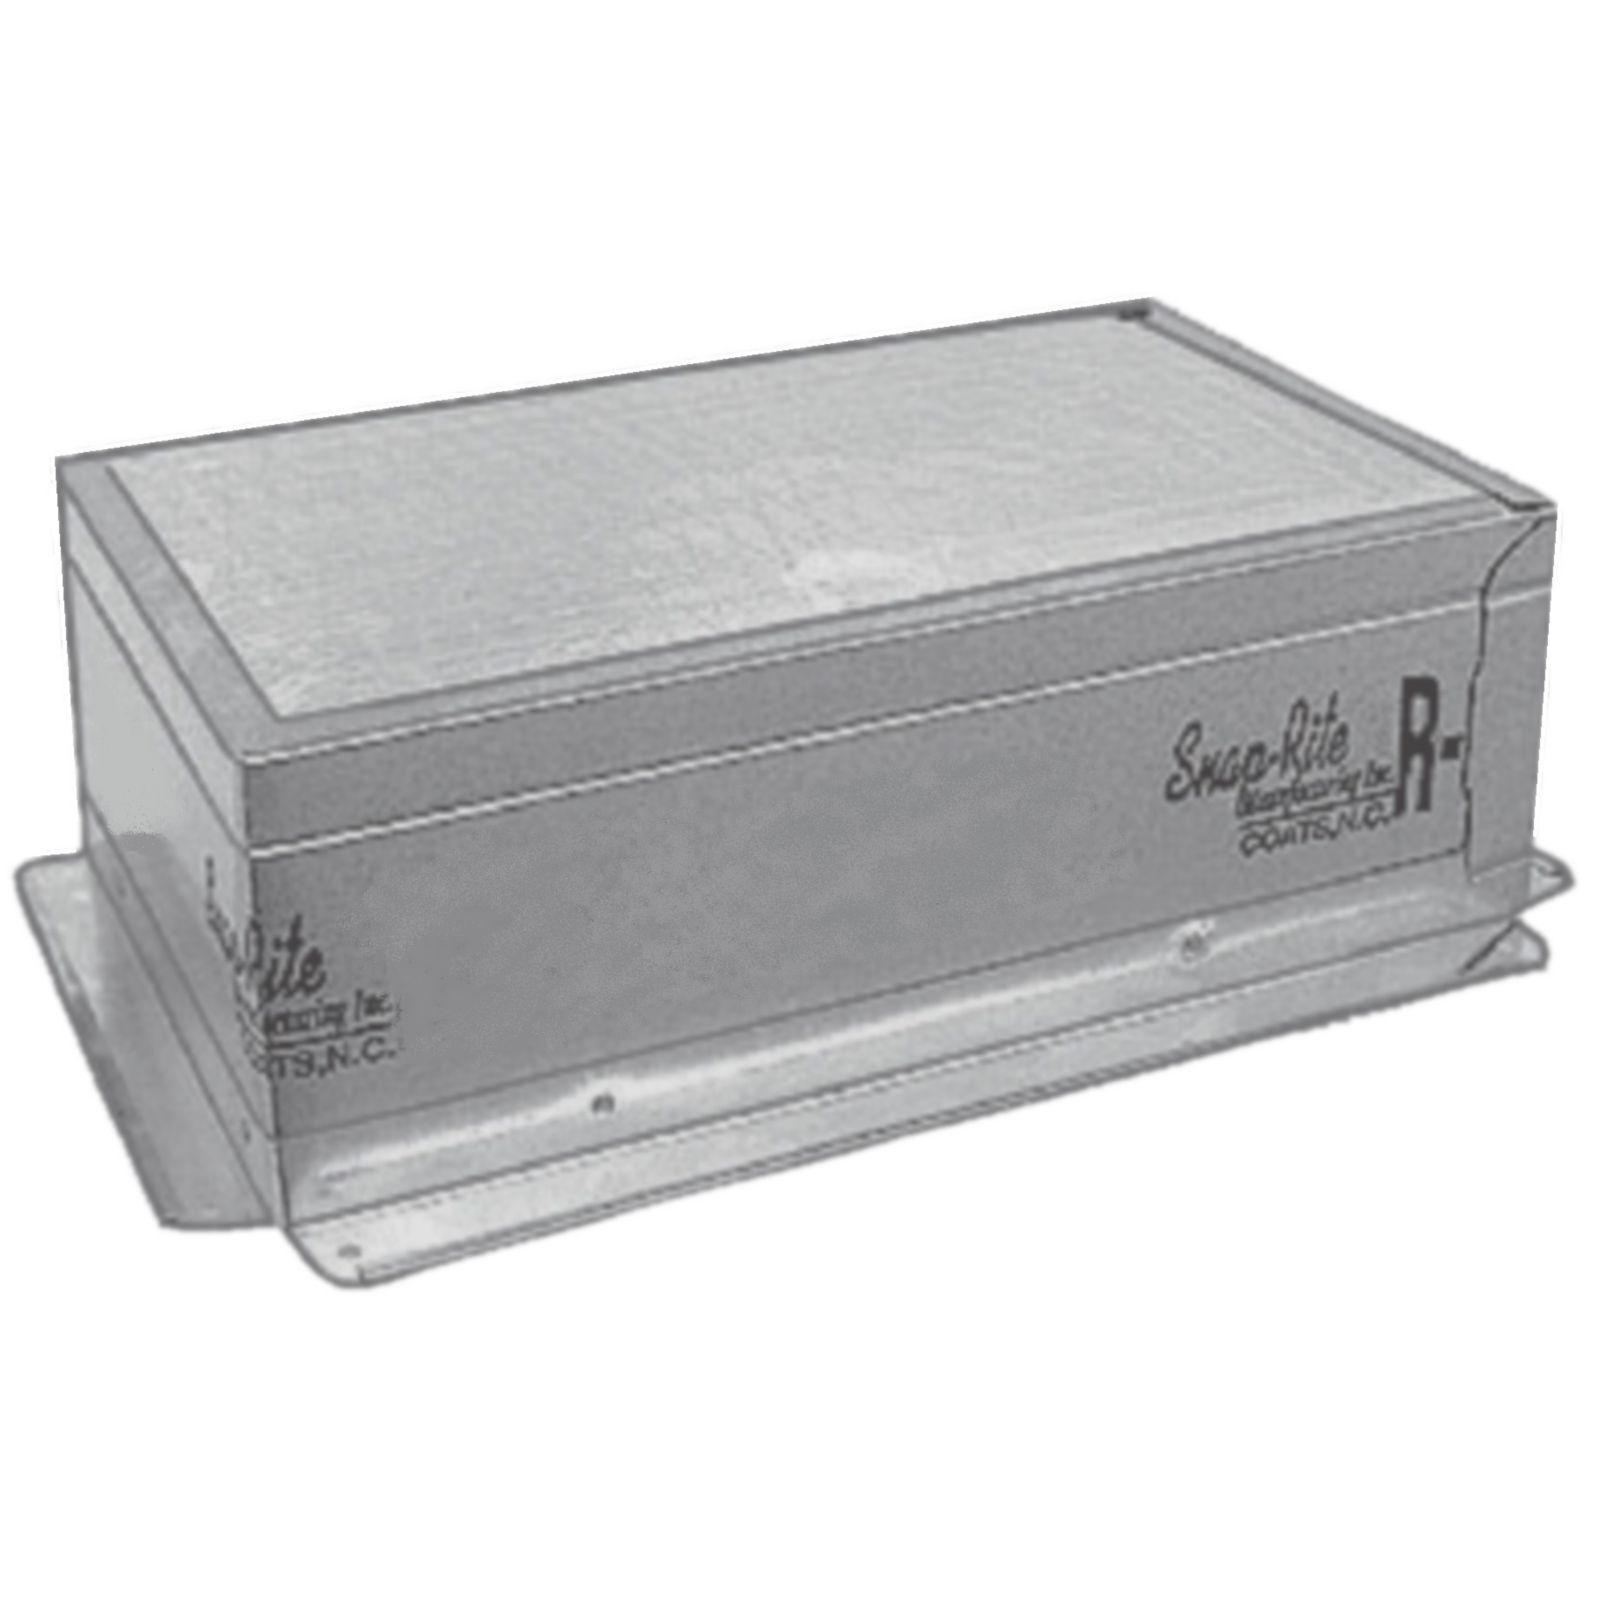 "Snap-Rite 20.5X20.5-3800F - Foil Top Insulated Register Box With Flange, 20.5"" x 20.5"" - R6"